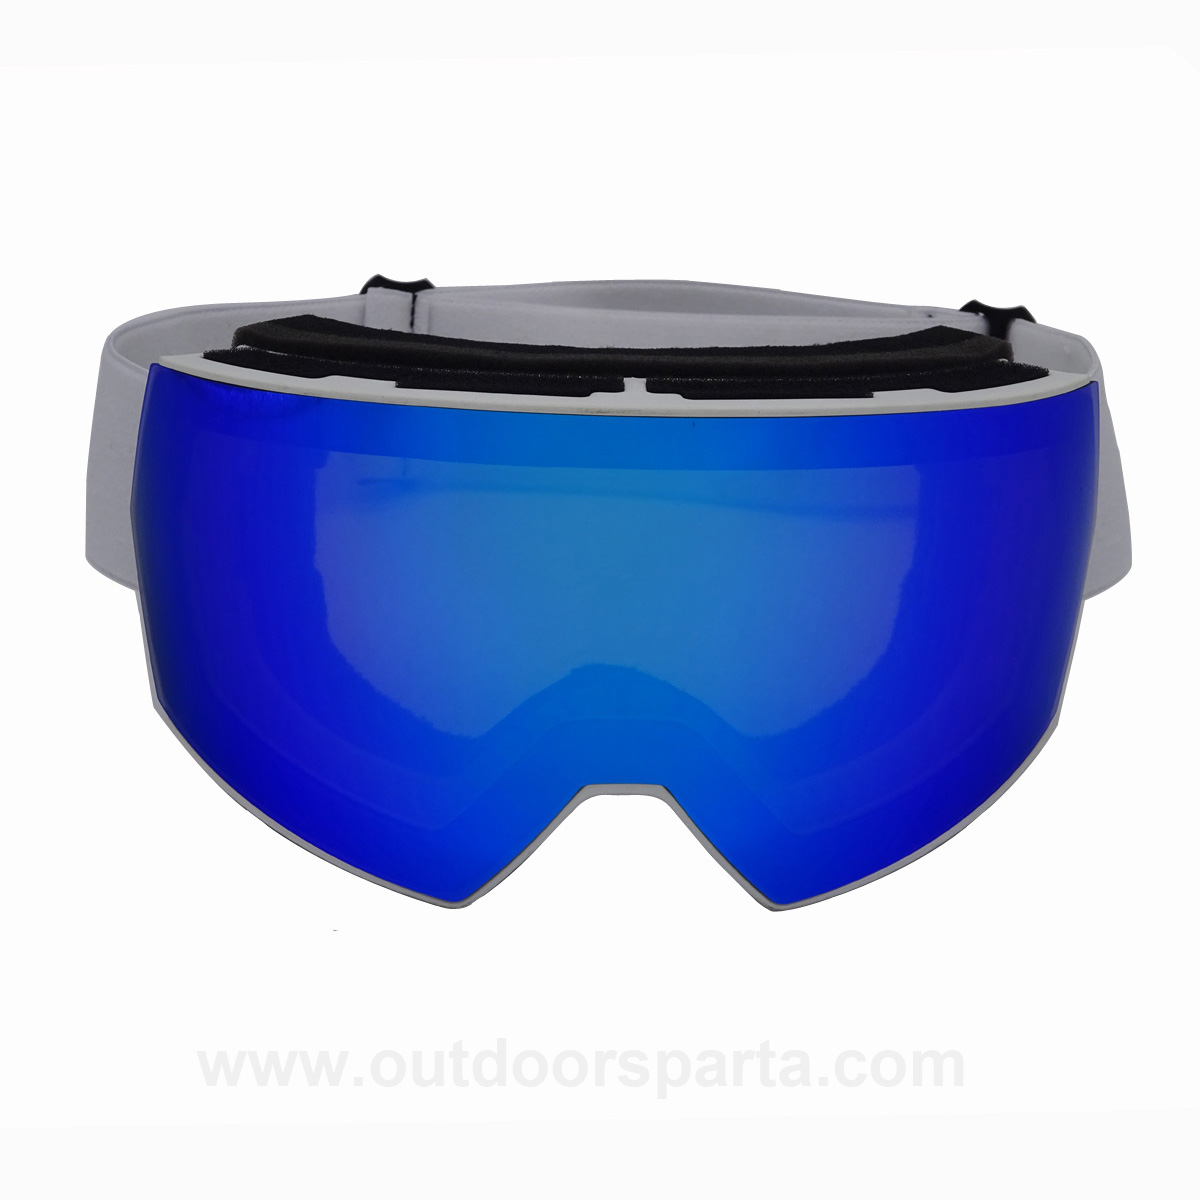 magnet lens snow goggles (SNOW-037)